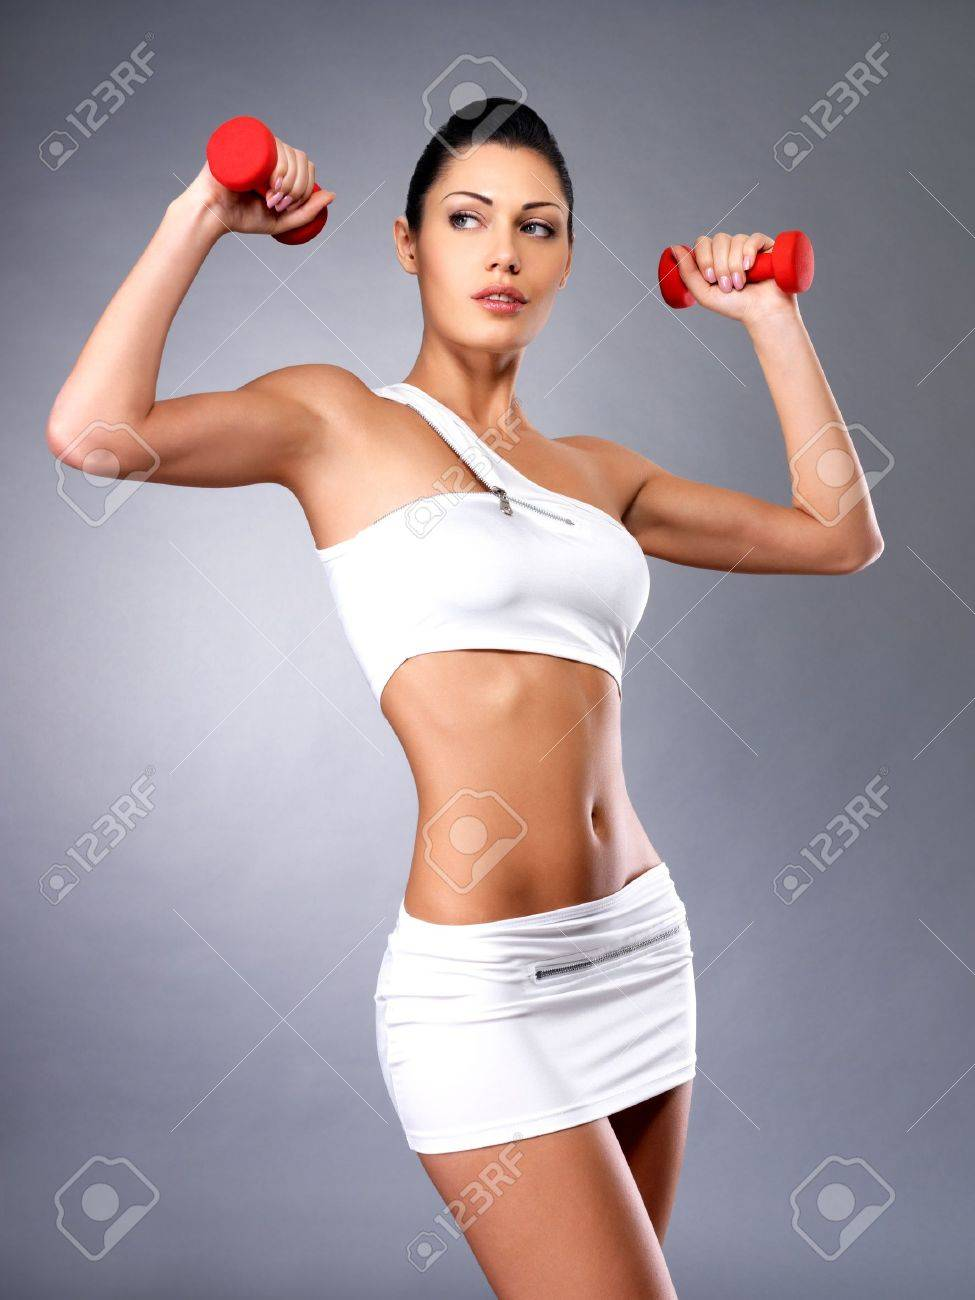 beautiful young woman with dumbbells -  grey studio background. Healthy lifestyle concept. Stock Photo - 16300956